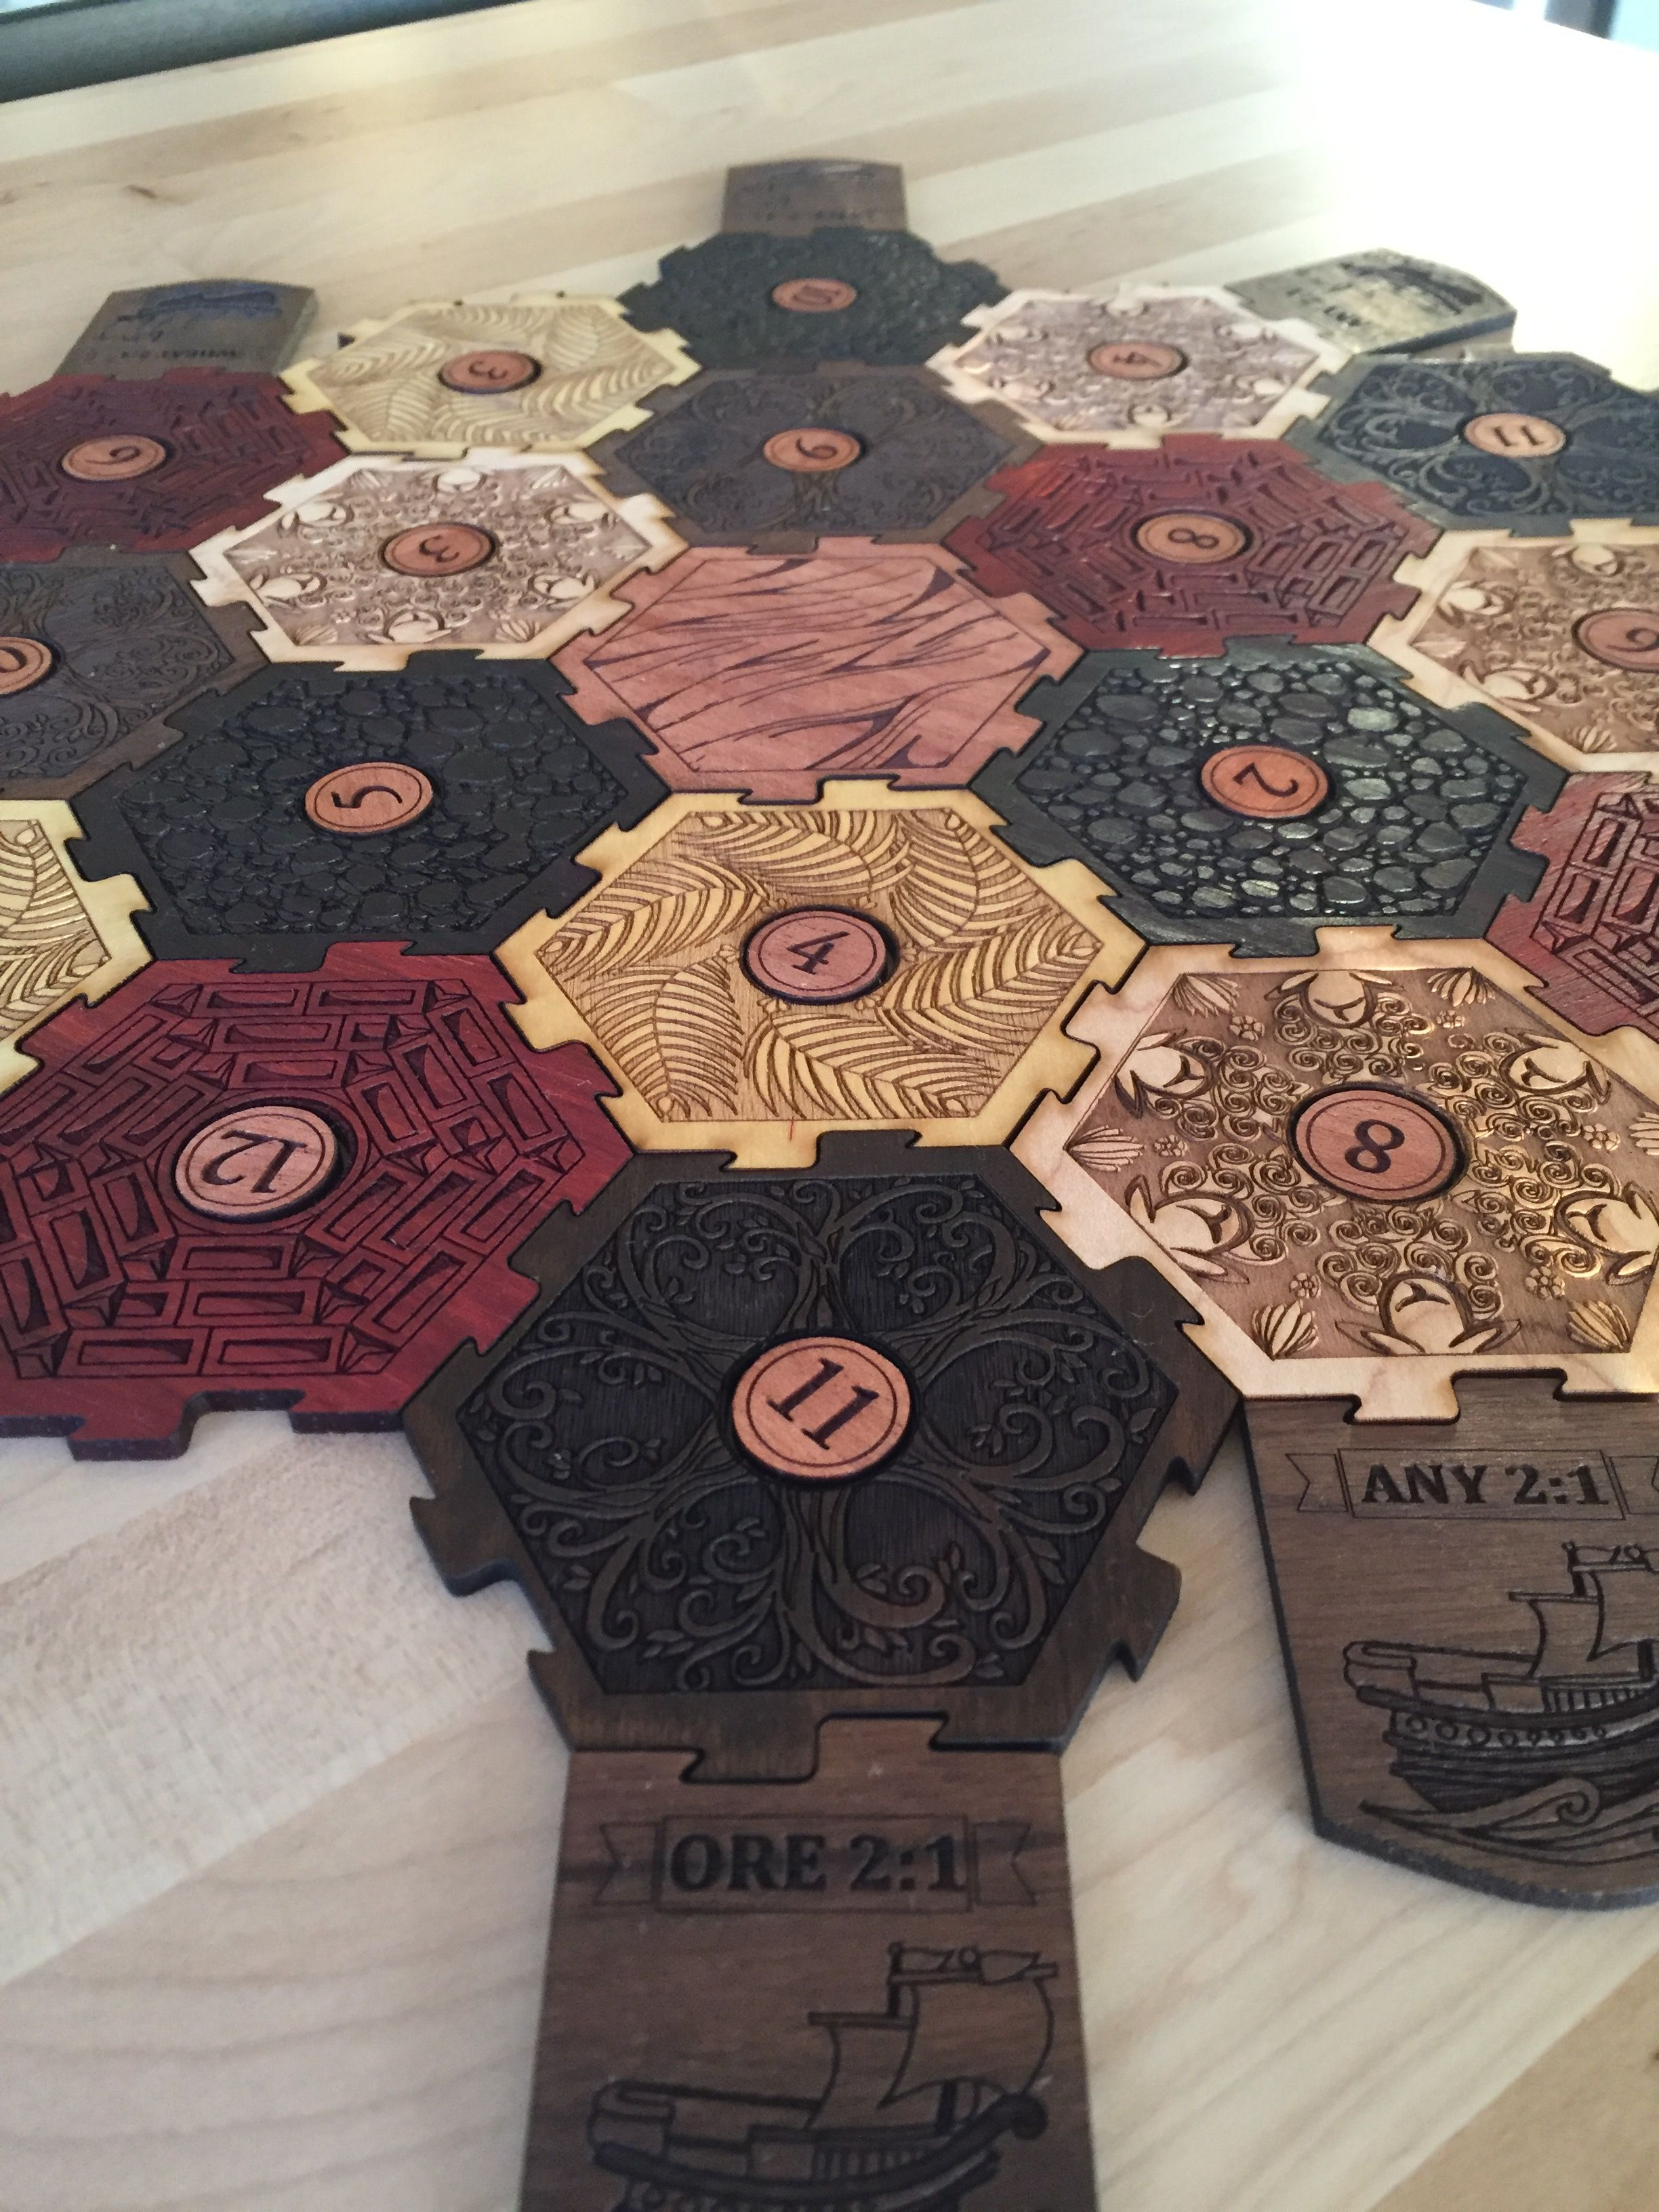 A Settlers of Catan set. Took about 15 hours to laser-cut and finish all the pieces.